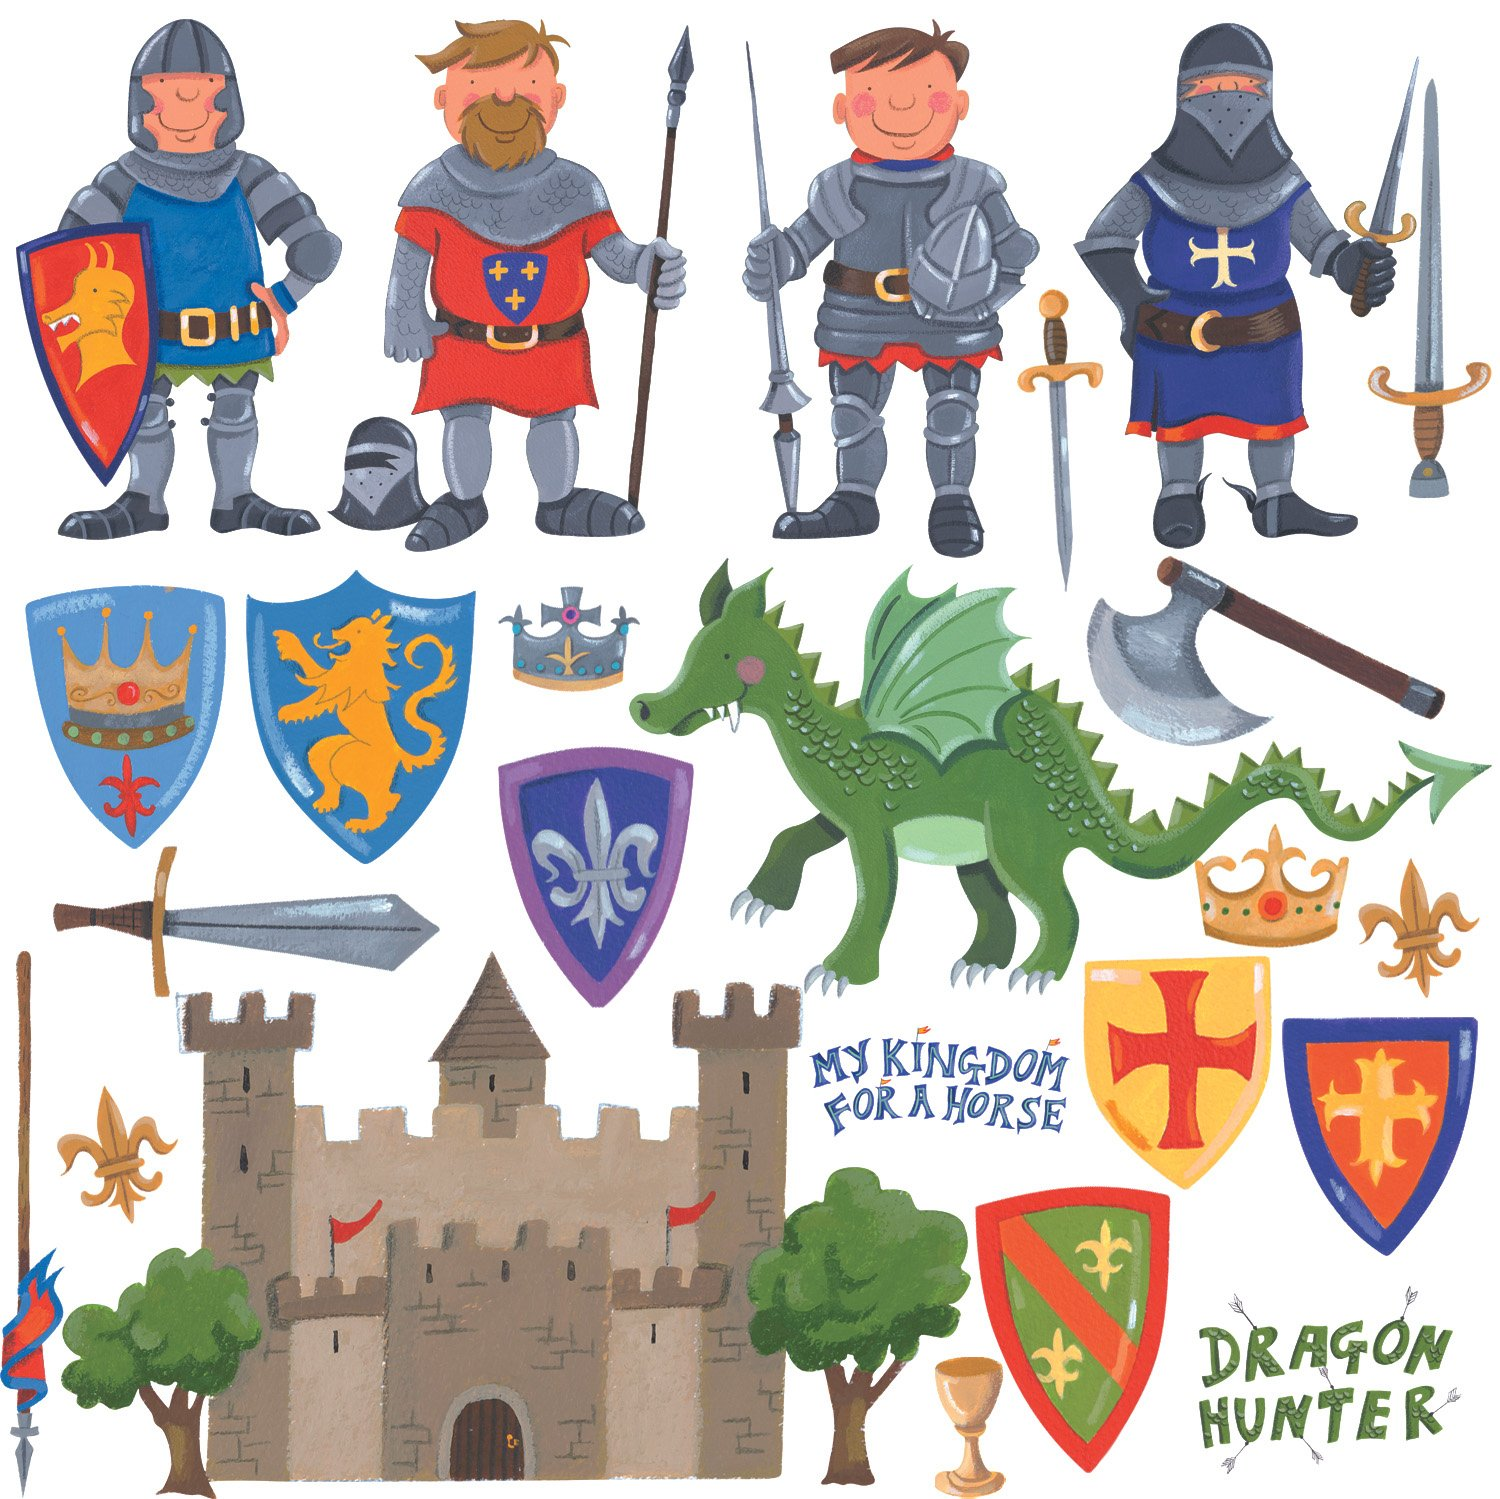 RoomMates - Wandsticker Mini-Ritter 24